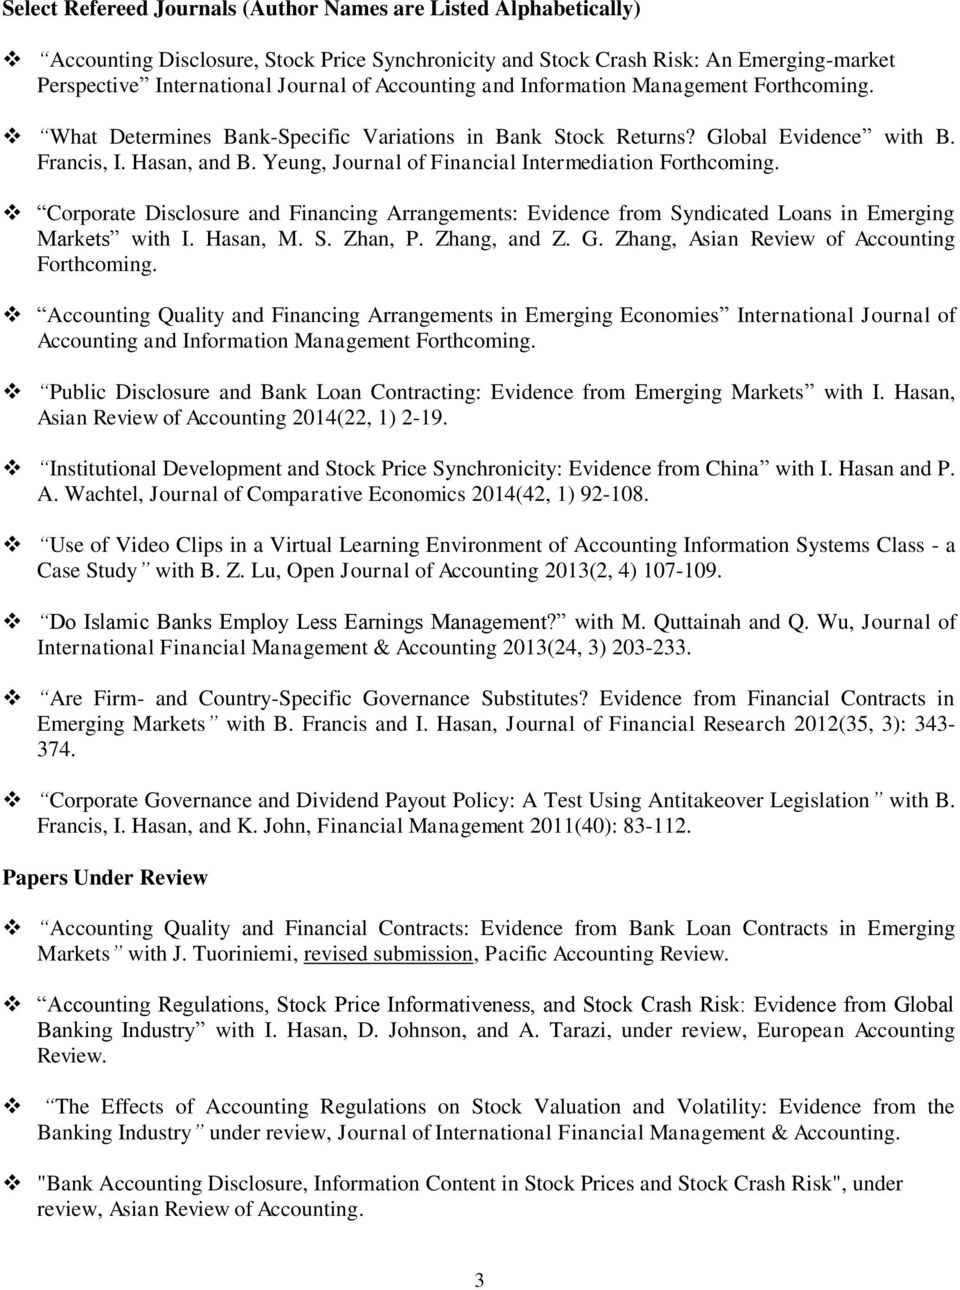 Yeung, Journal of Financial Intermediation Forthcoming. Corporate Disclosure and Financing Arrangements: Evidence from Syndicated Loans in Emerging Markets with I. Hasan, M. S. Zhan, P. Zhang, and Z.